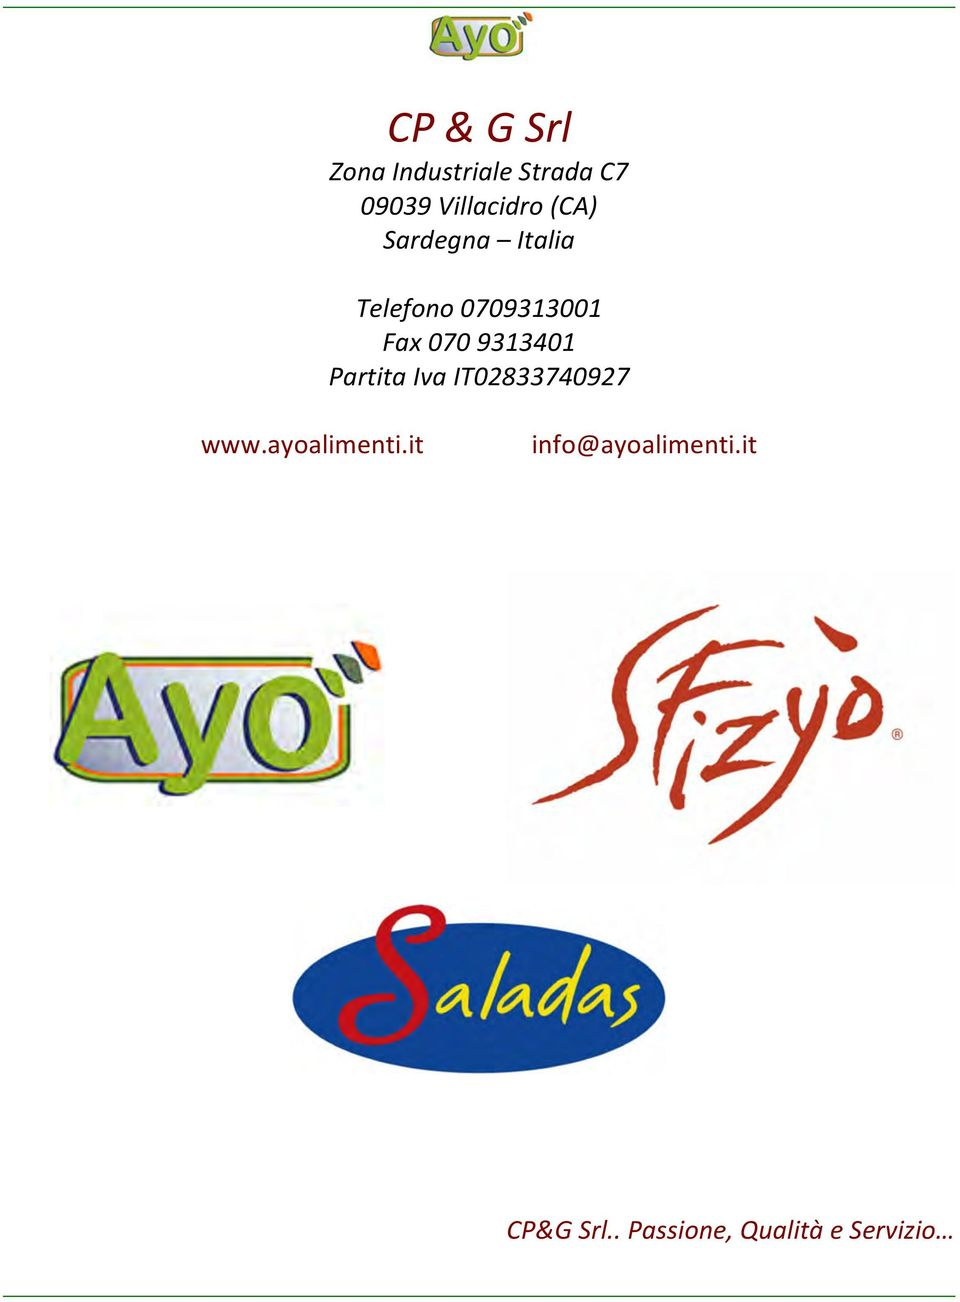 Fax 070 9313401 Partita Iva IT02833740927 www.